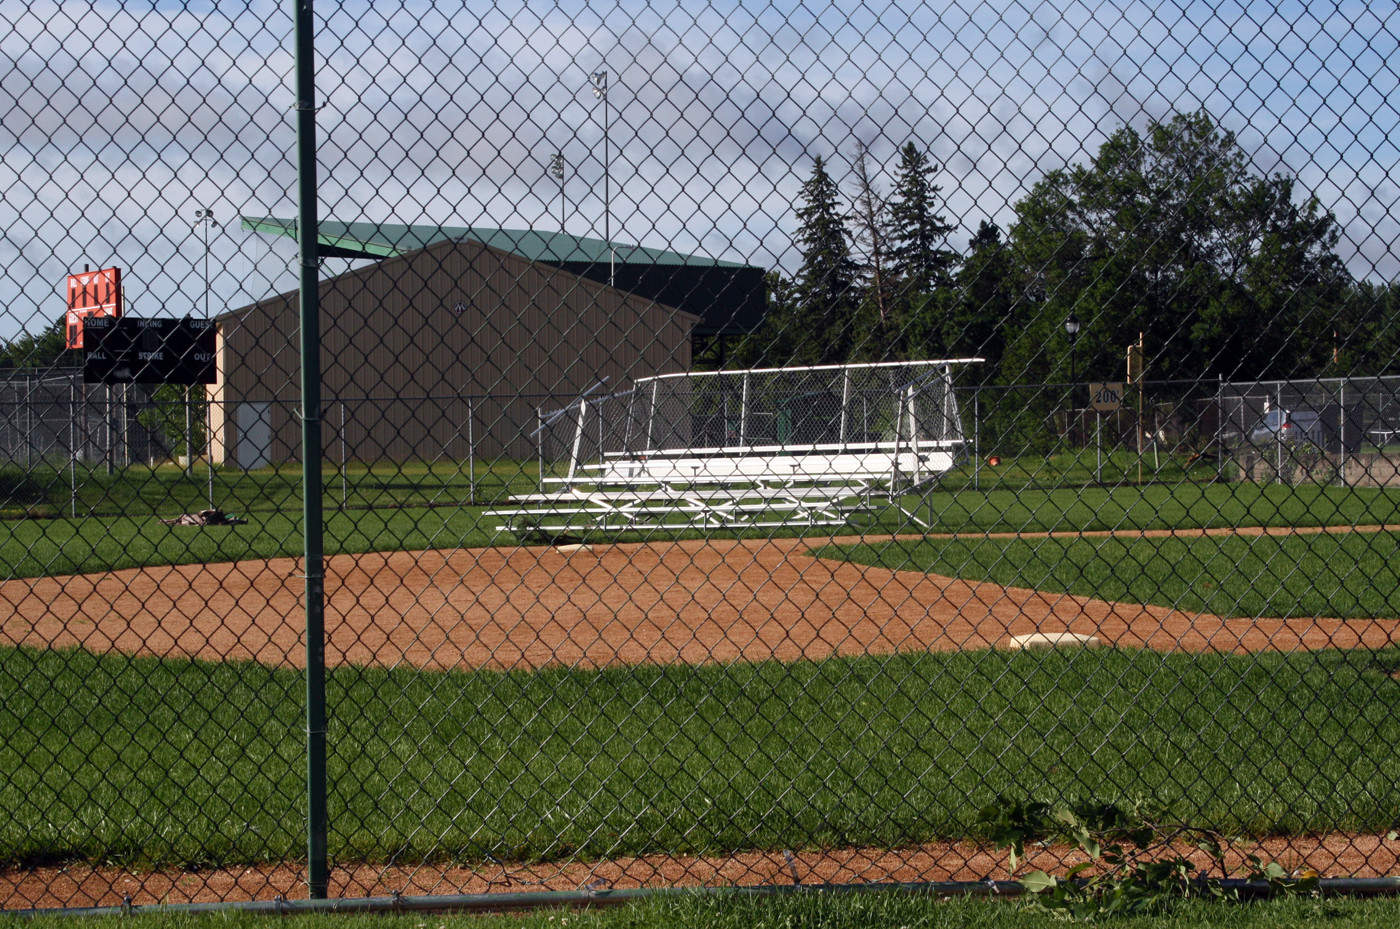 The Little League bleachers in Ely were toppled in the wind.